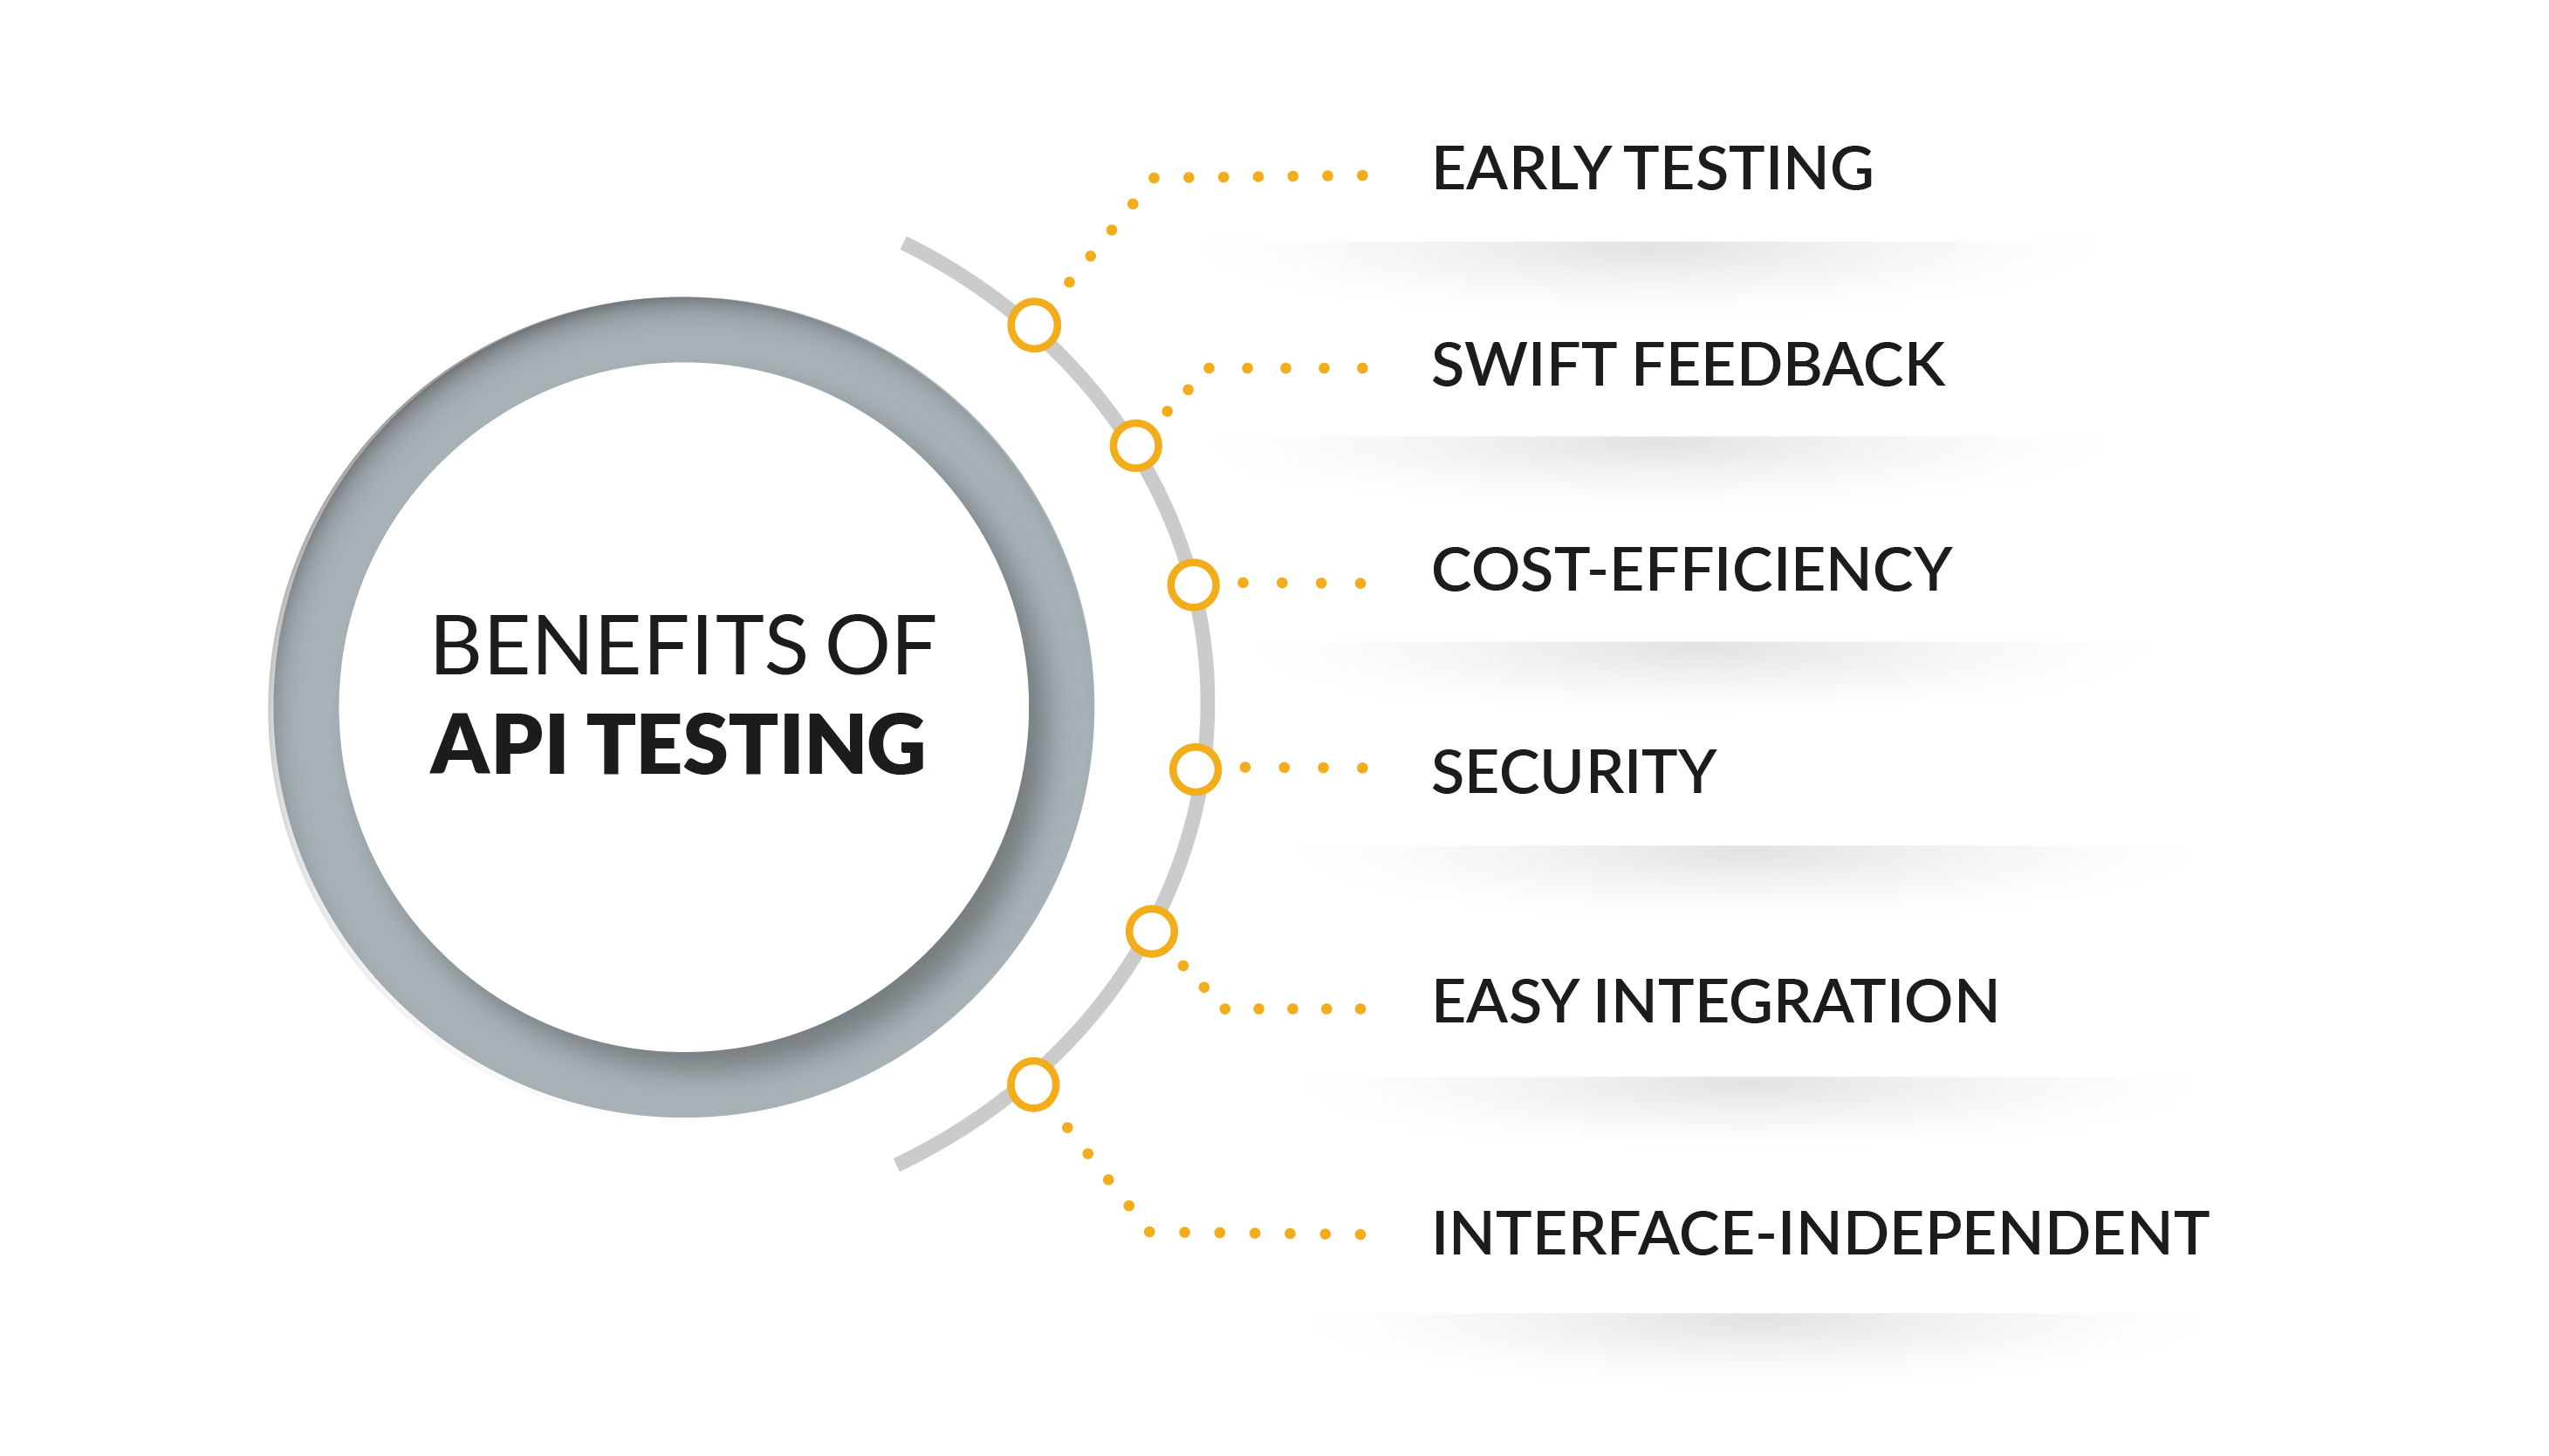 benefits of API testing.jpg